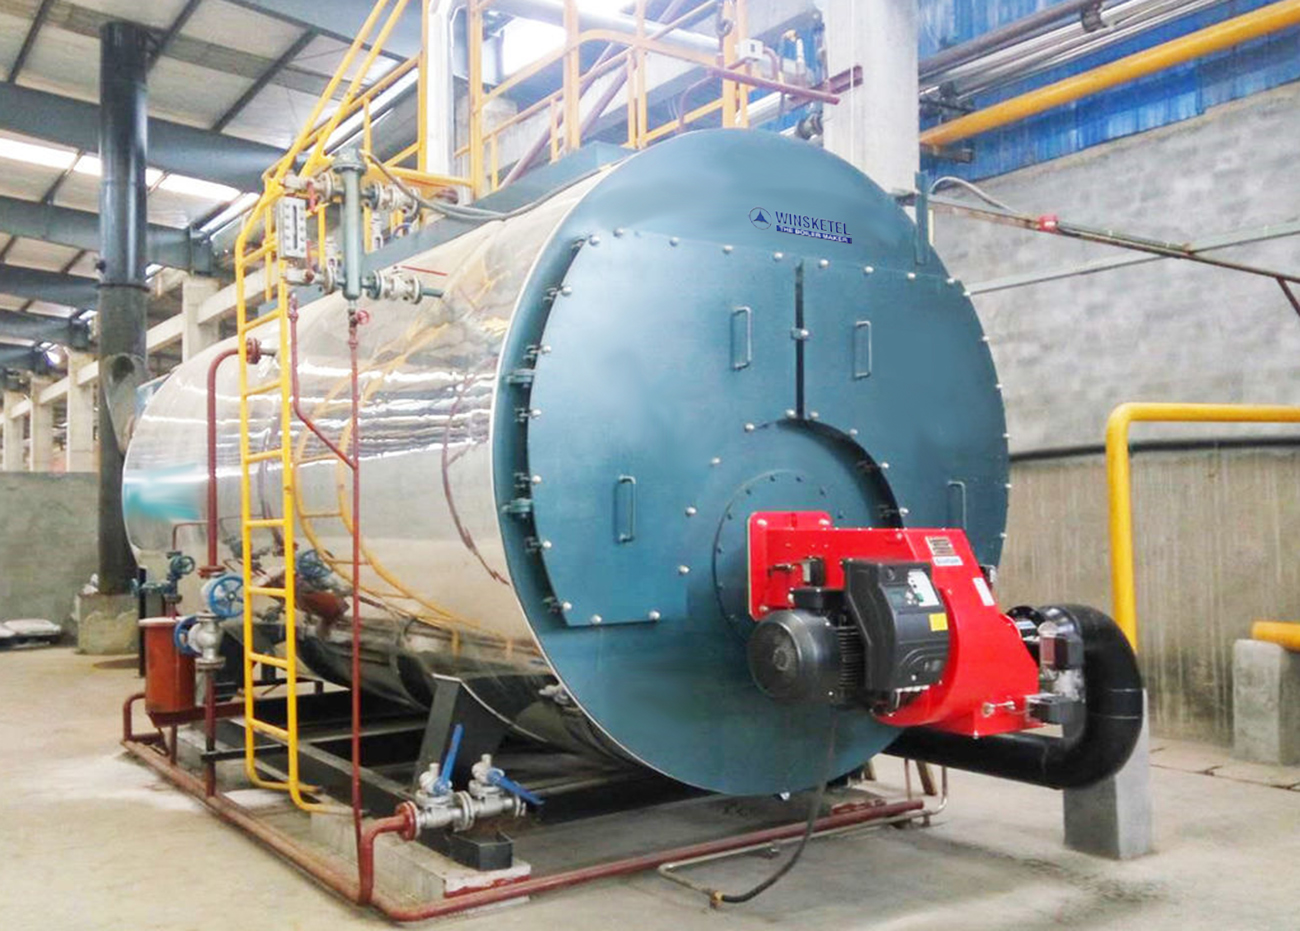 A picture of a steam boiler.